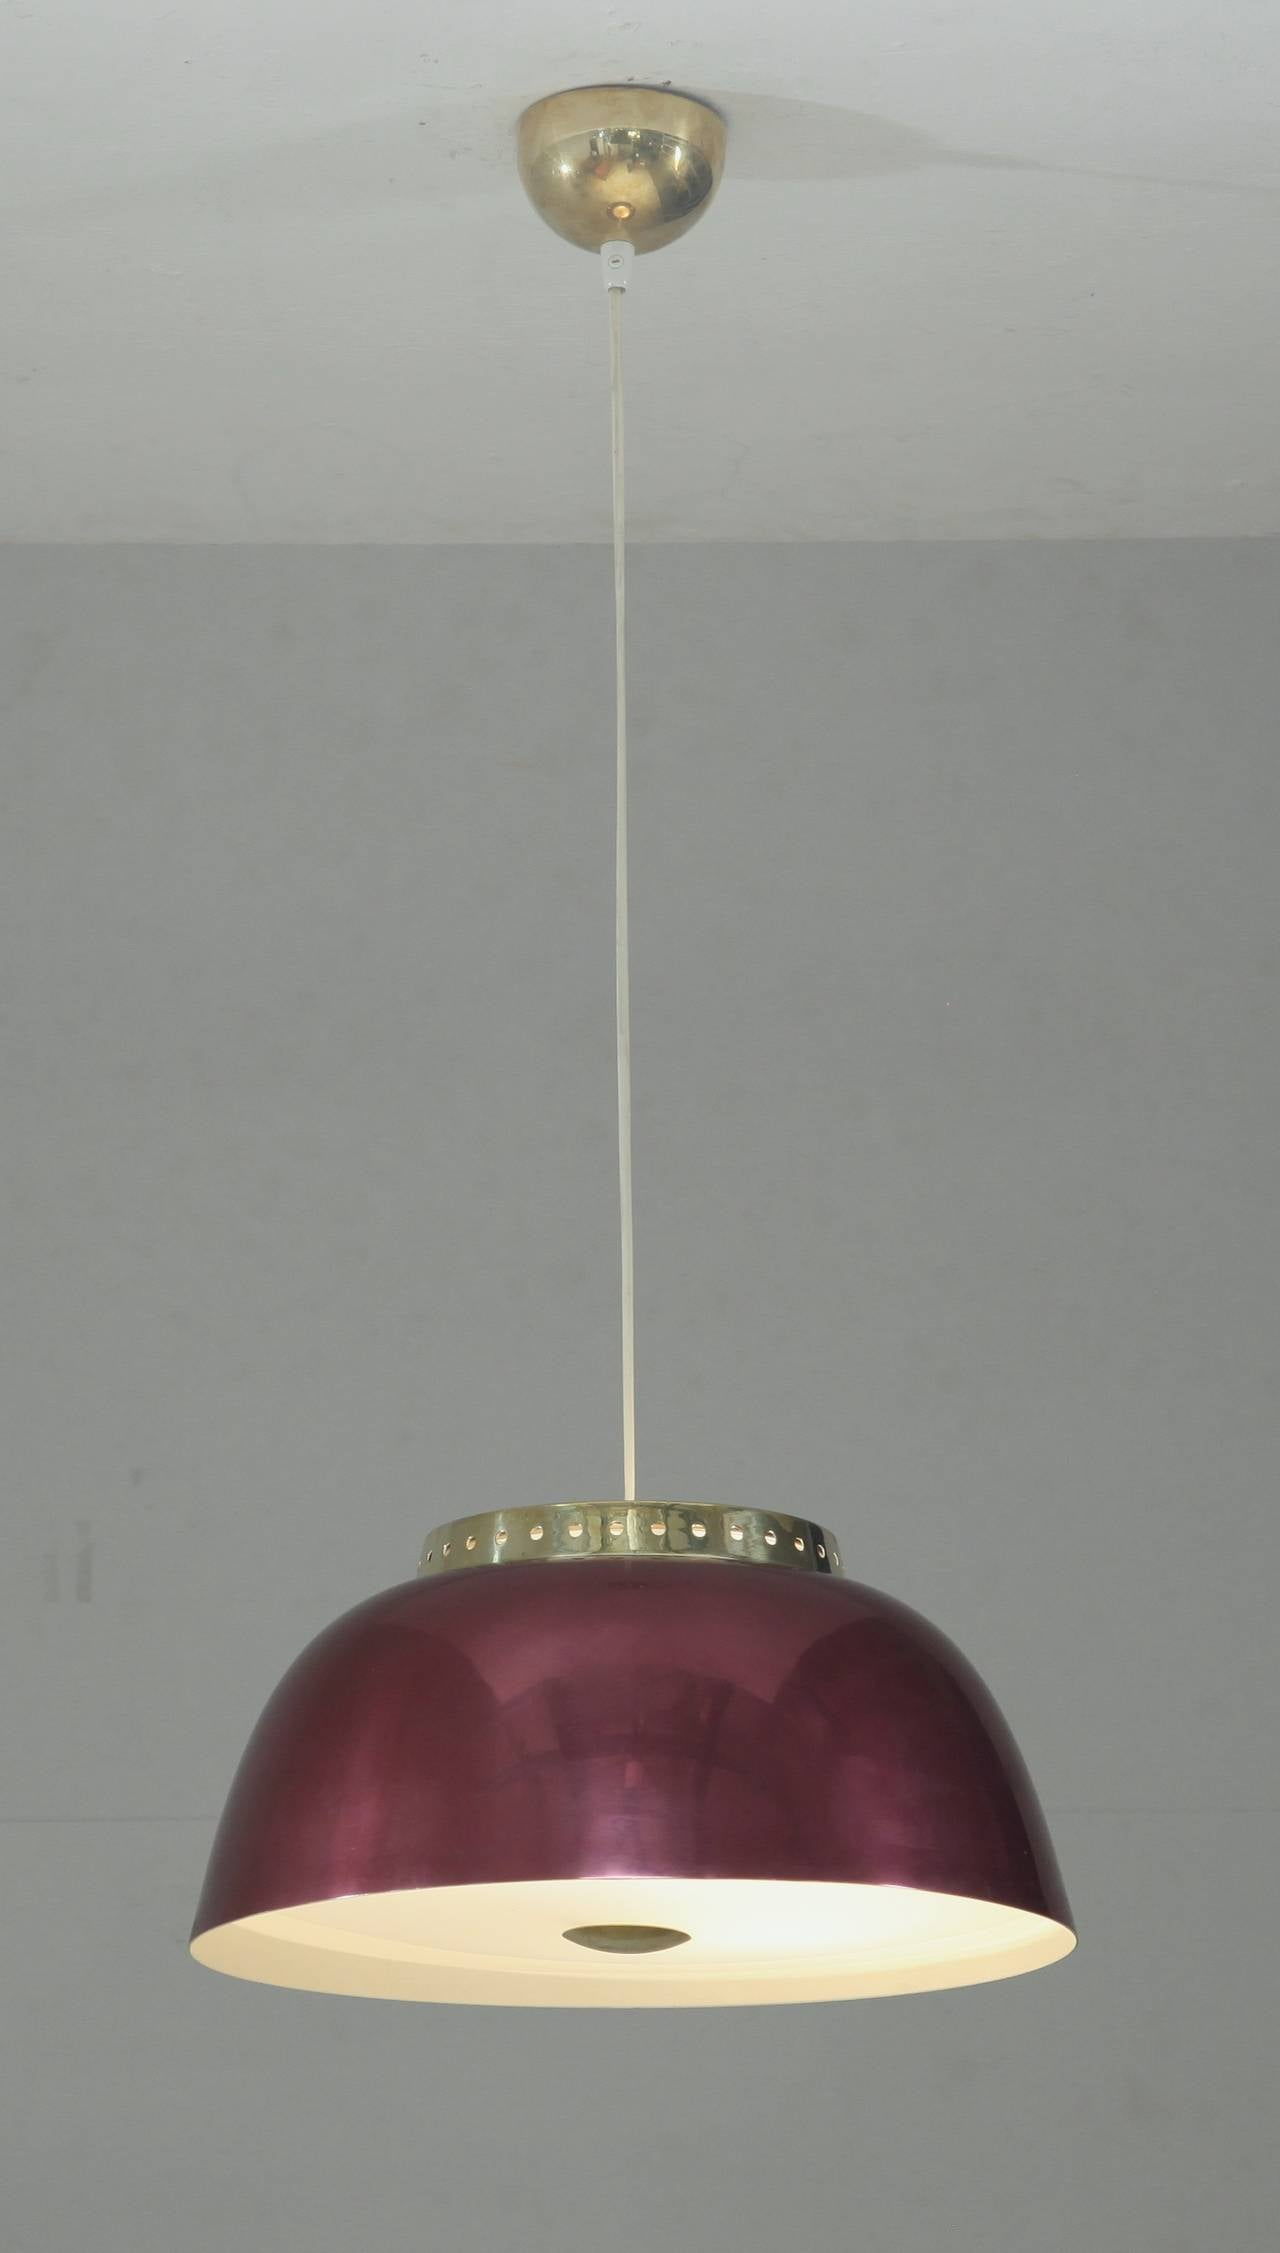 A rare Lisa Johansson-Pape model 61-334 pendant for Orno. The lamp is made of a wonderful burgundy metal shade with brass elements and an opaline glass diffuser.